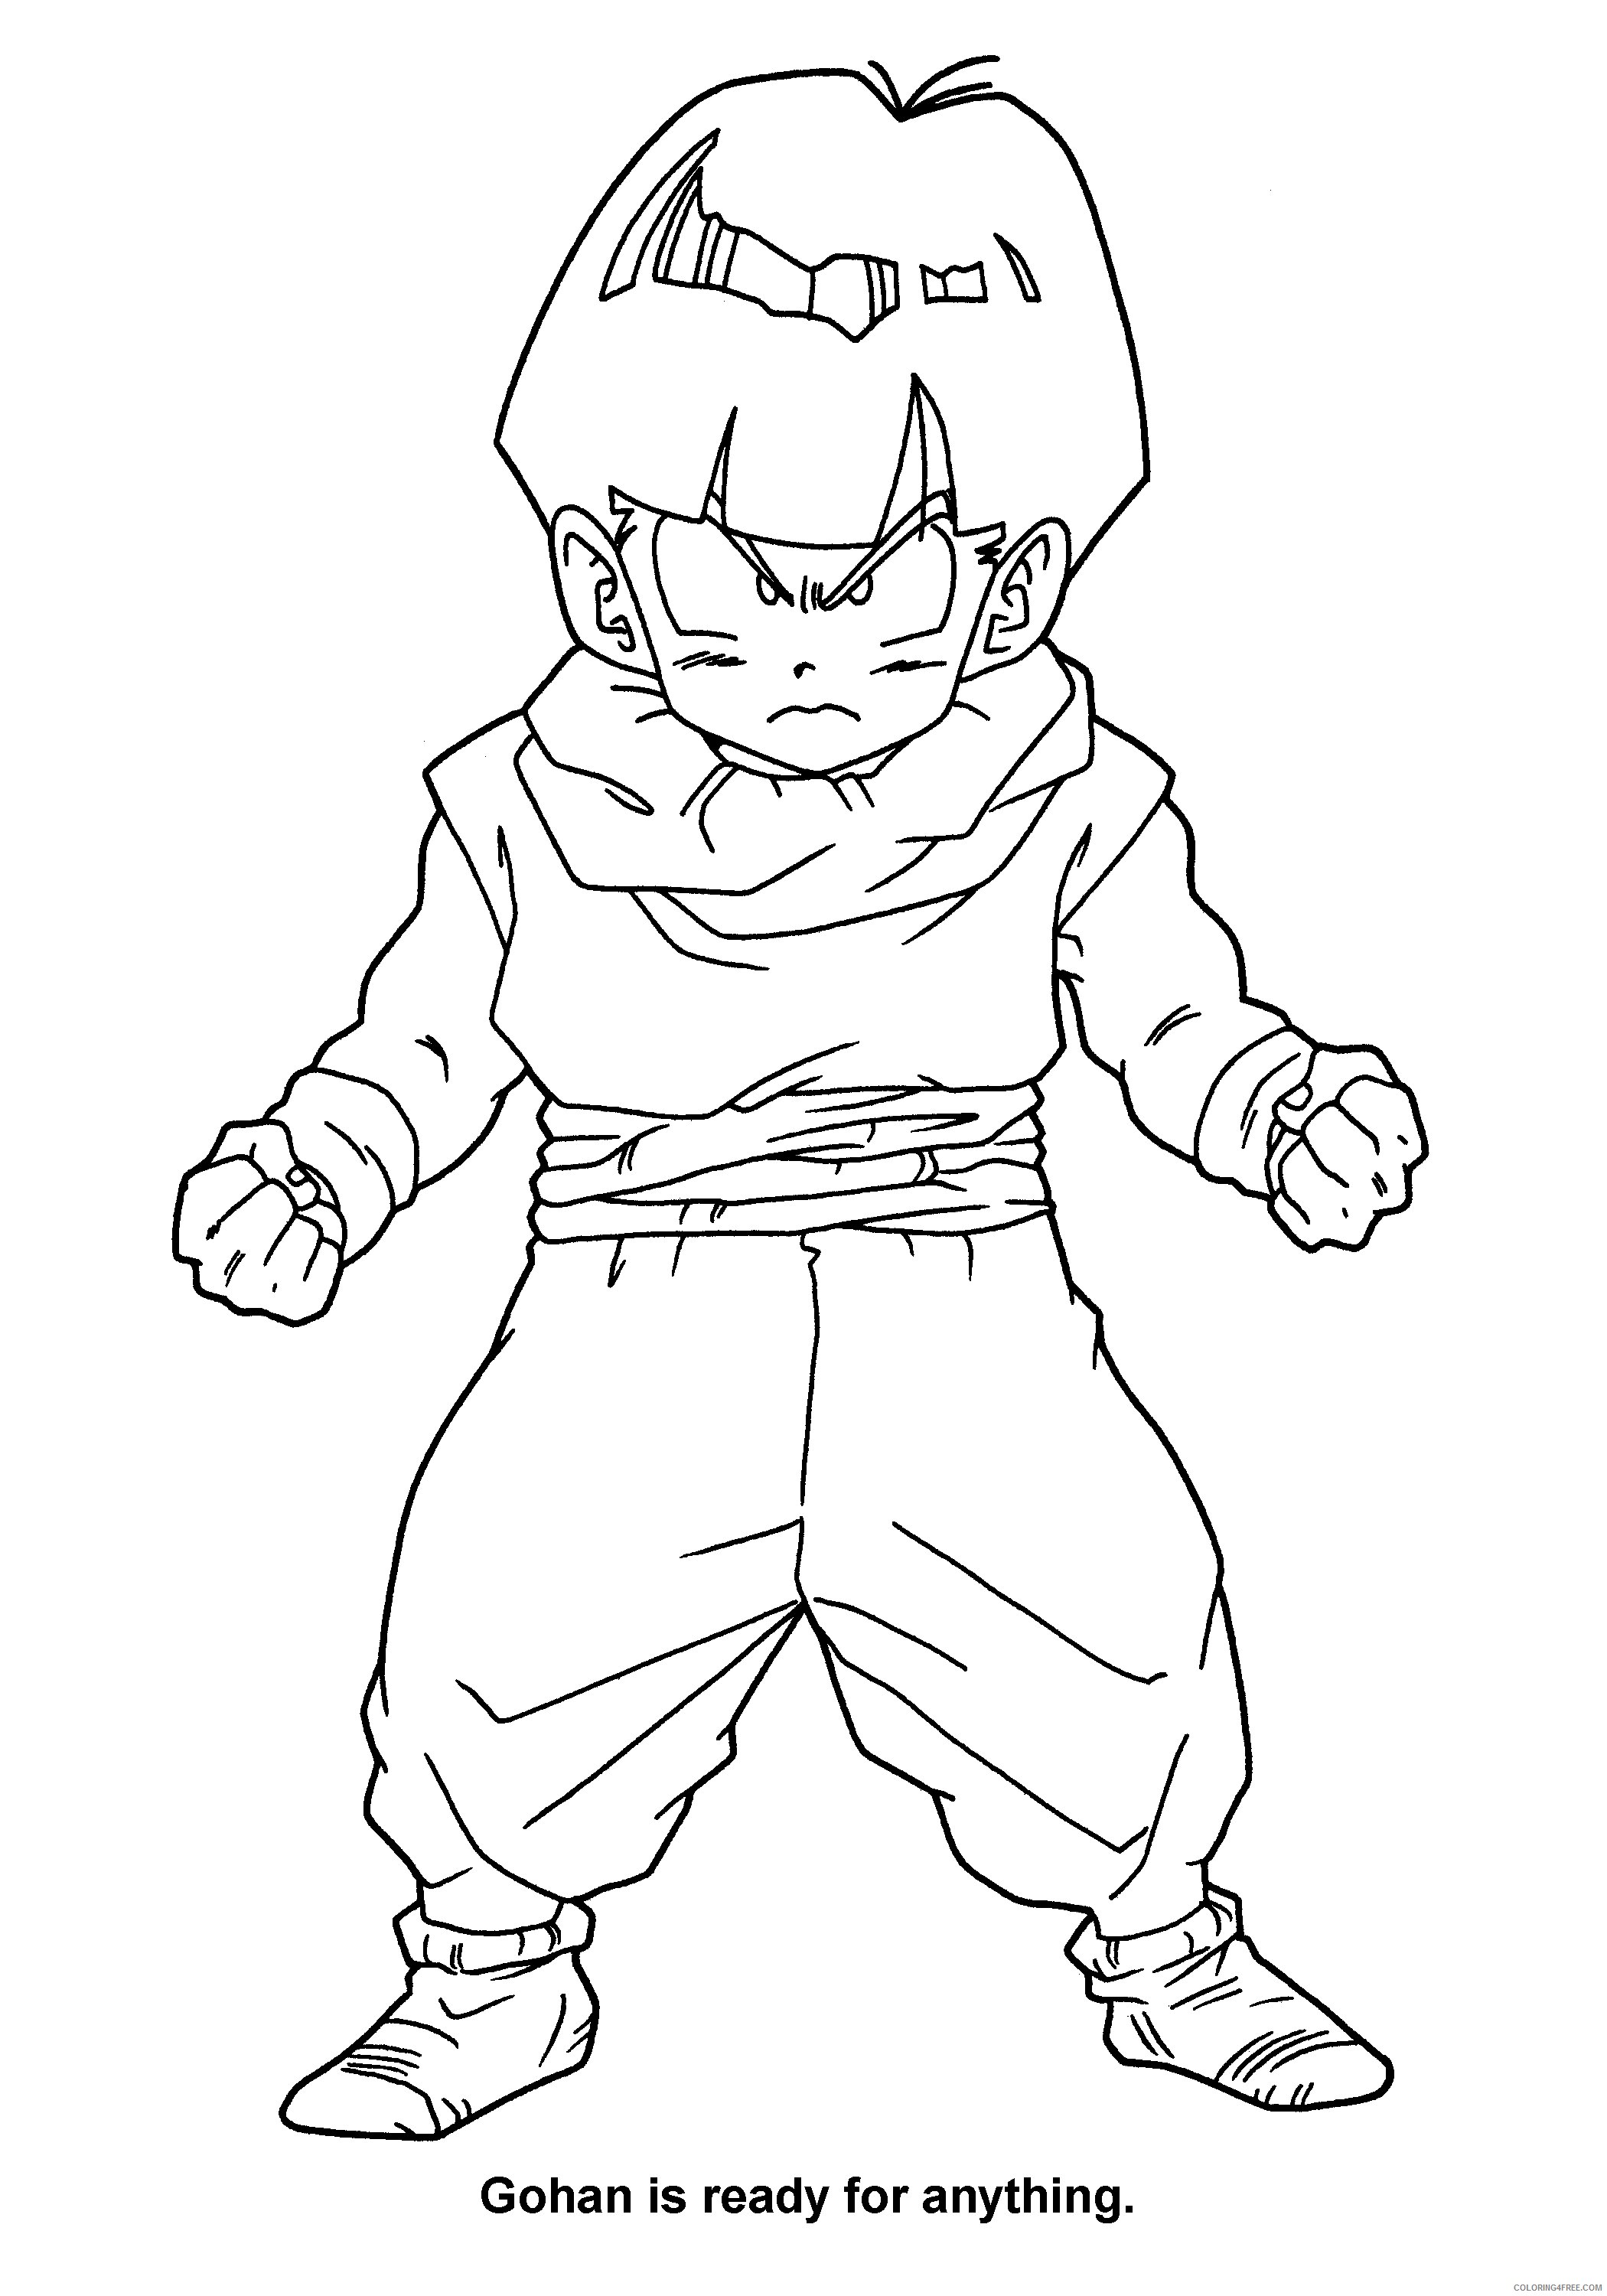 062 dragon ball z gohan is ready for anything Printable Coloring4free